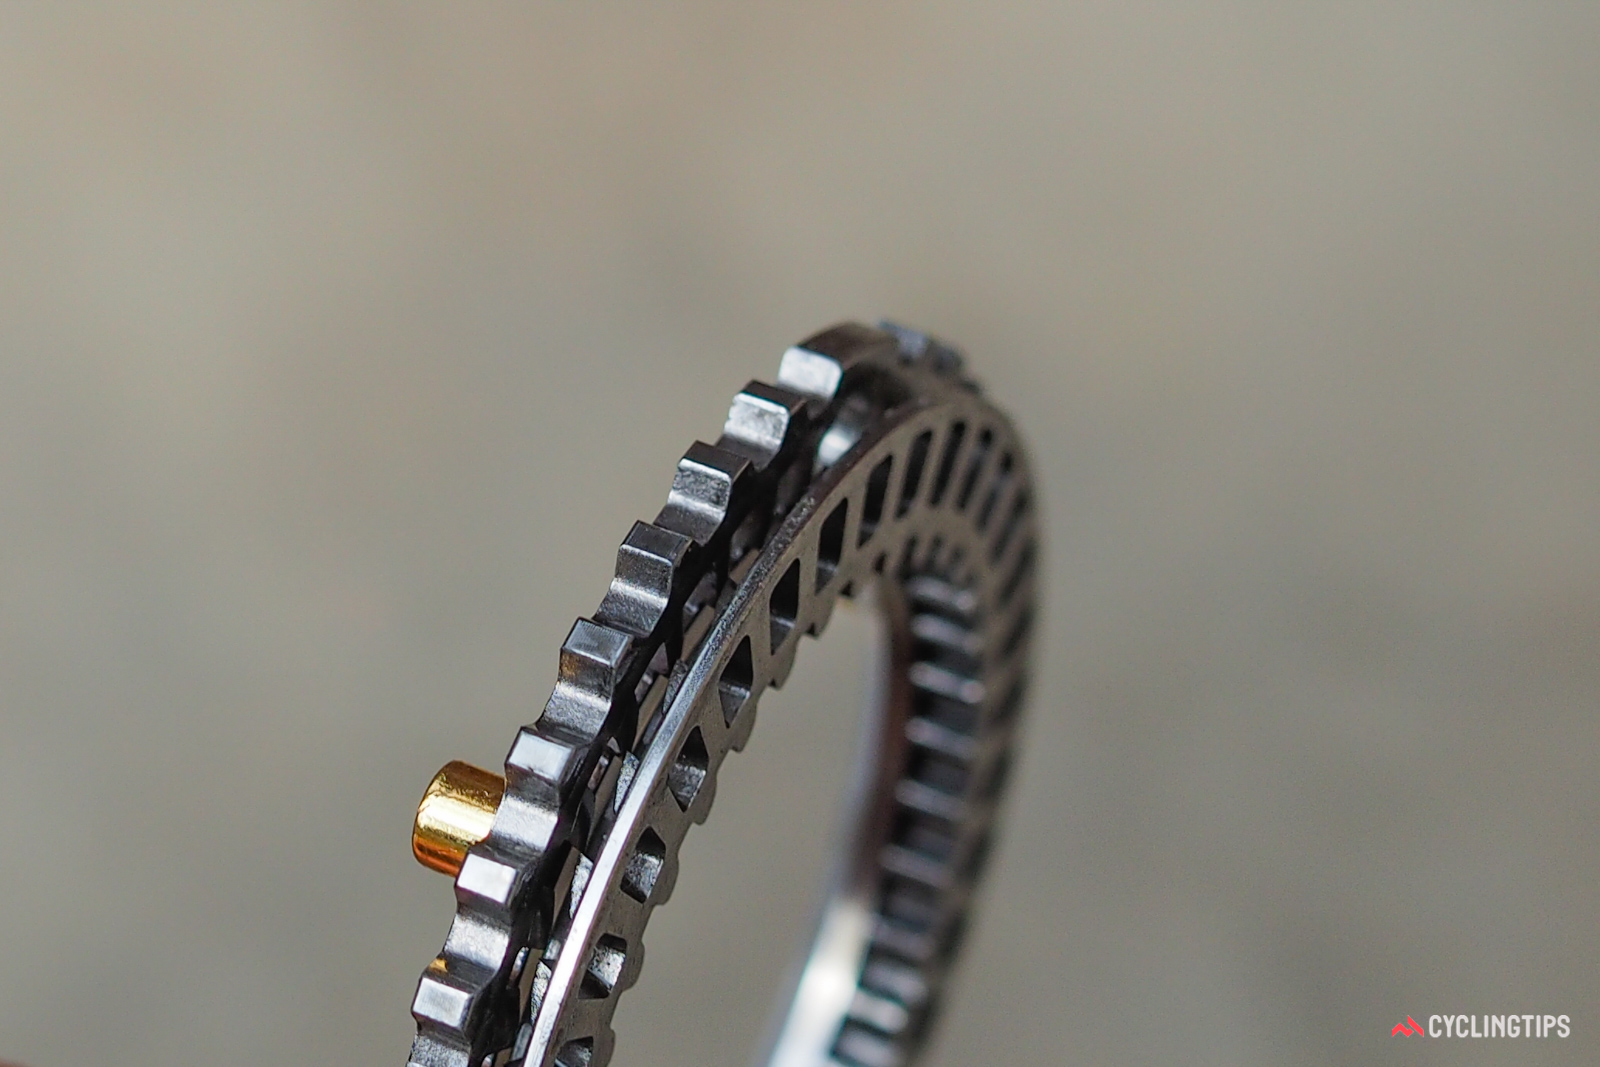 At its essence, Zipp's Axial Clutch driver is very similar to DT Swiss's Star Ratchet mechanism with two opposing steel ratchet rings - one anchored in the hub shell, and the other in the freehub body. The difference here, though, is that only one ring has ramped teeth; the other one is flat, but with cutouts into which those teeth engage.